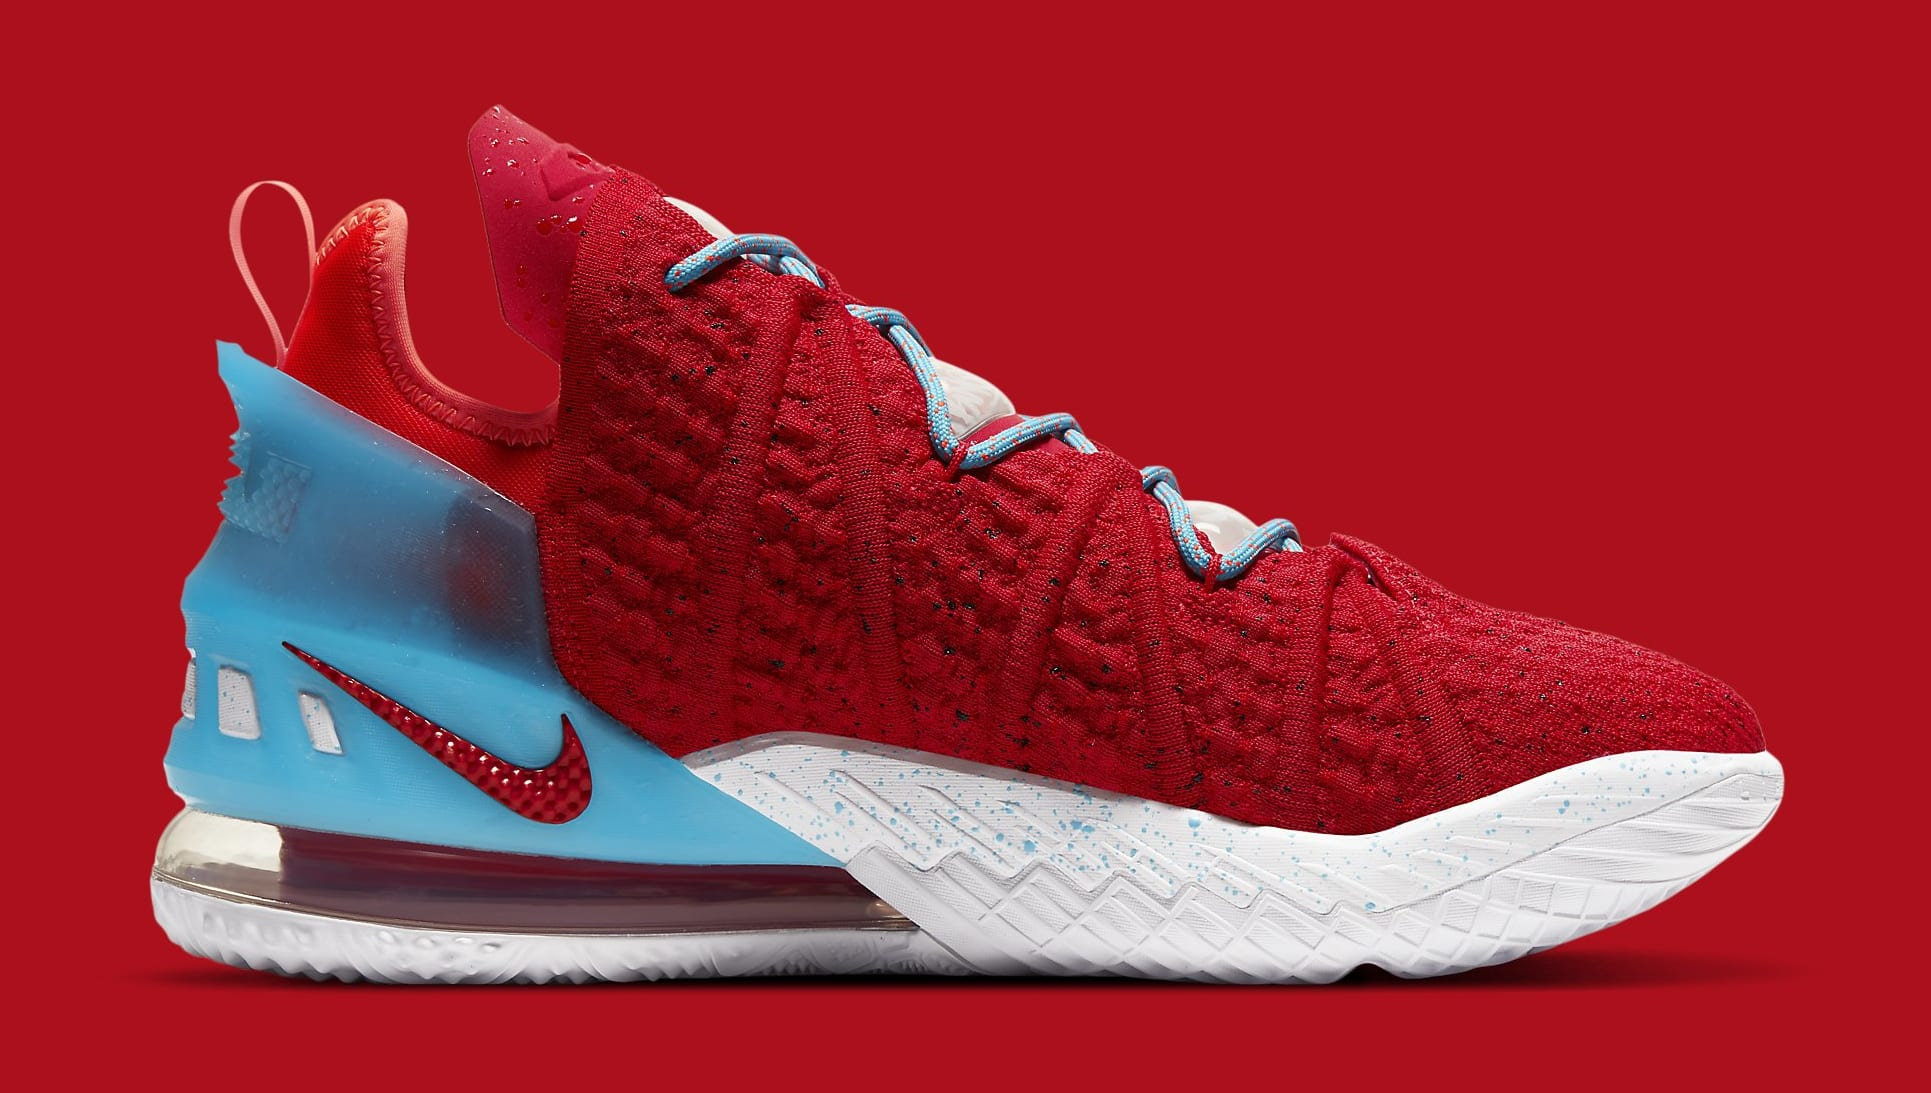 Nike LeBron 18 'Chinese New Year' CW3155-600 Medial